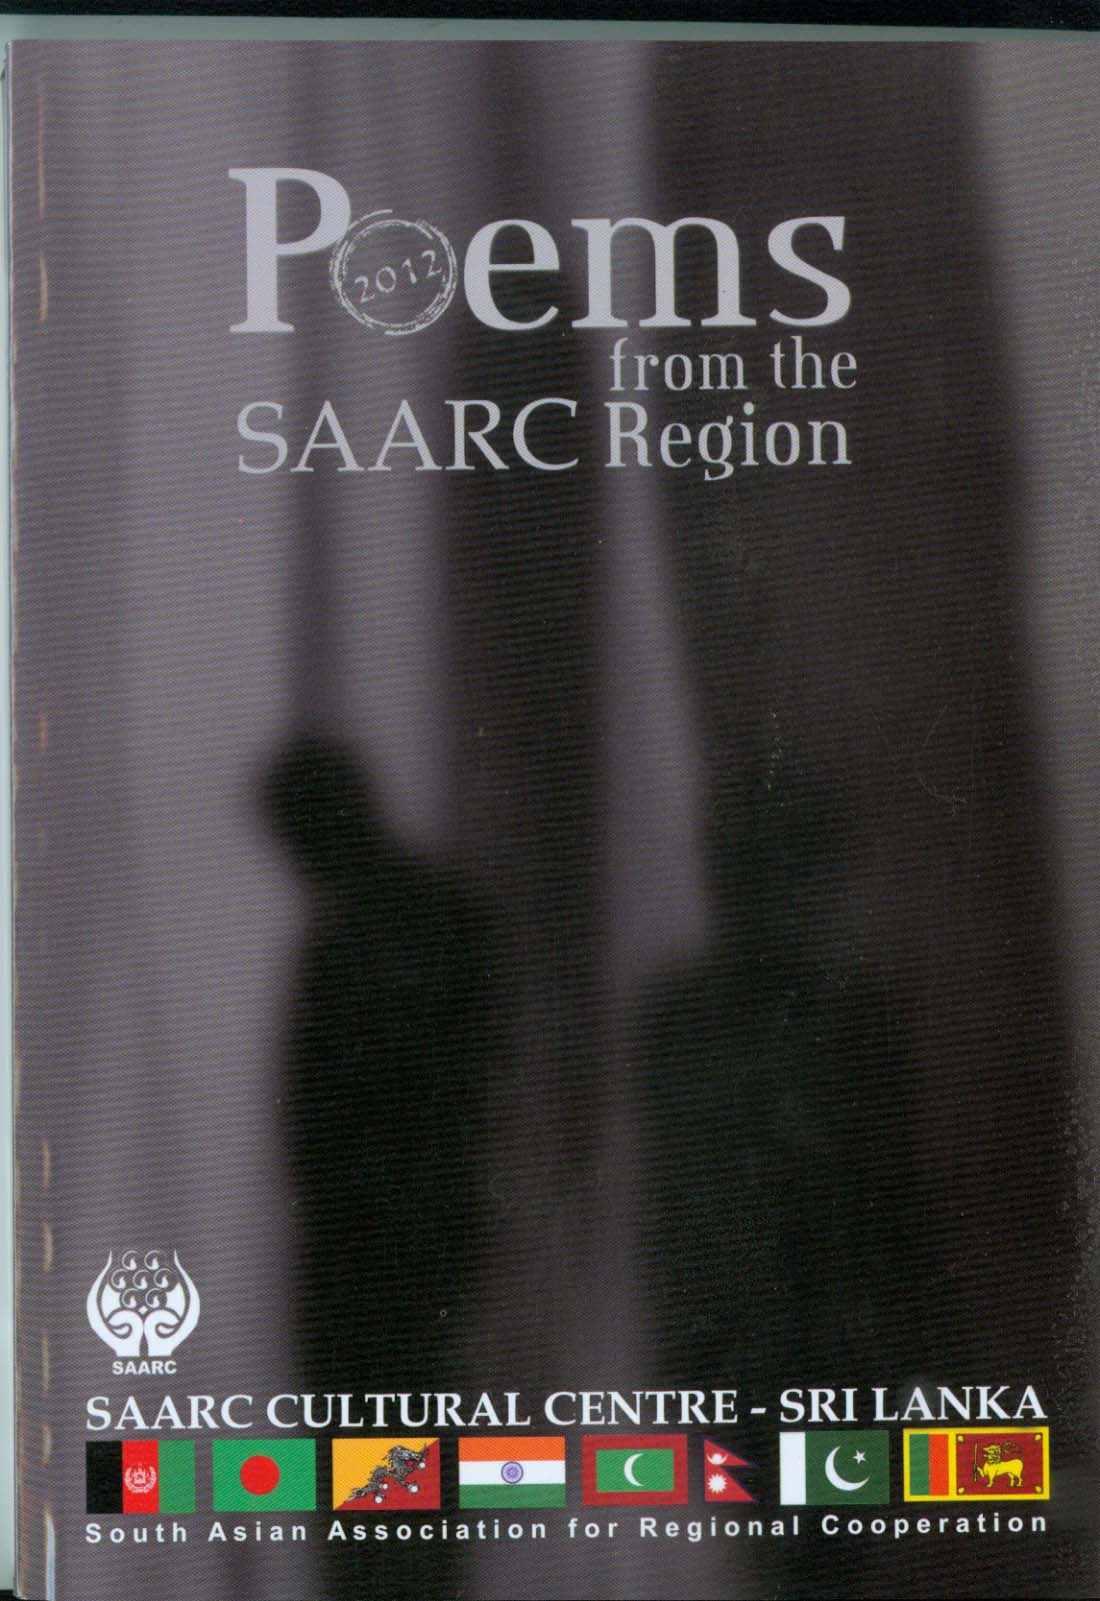 Poems from the SAARC Region 2012 Image